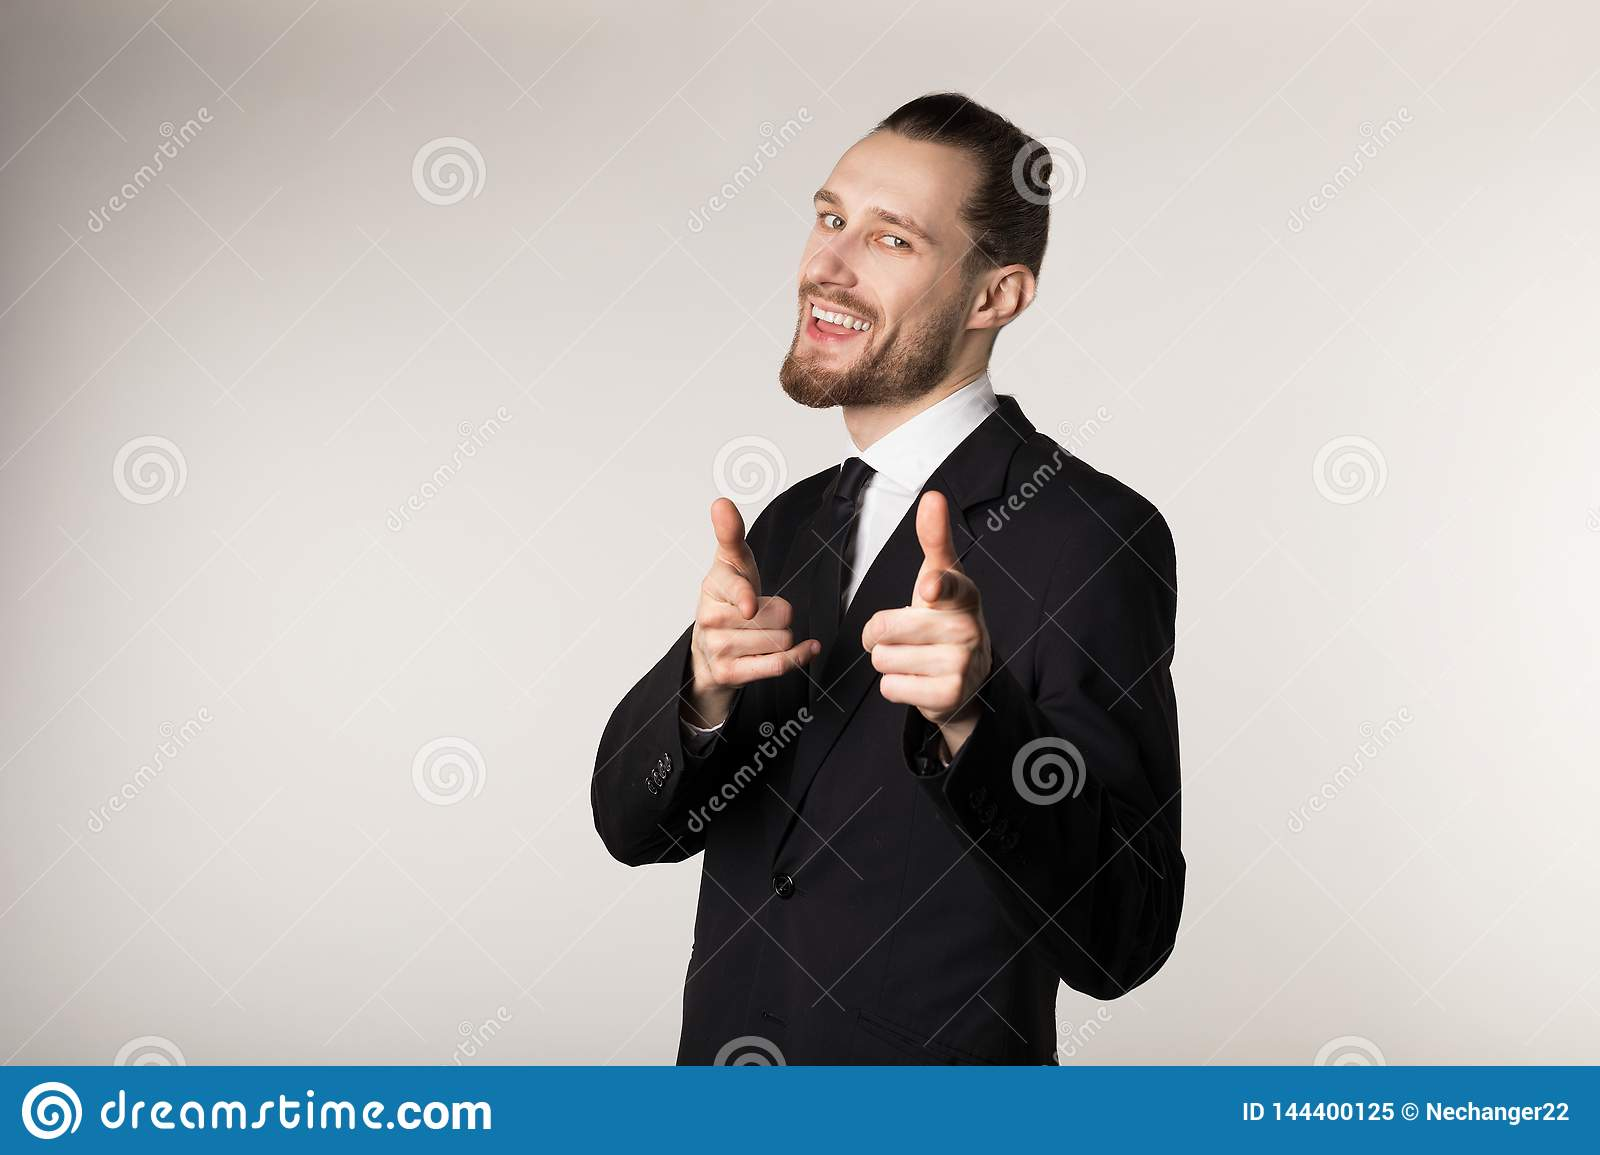 Happy smiling man with beard and trendy hairstyle wearing black suit looking and pointing at camera